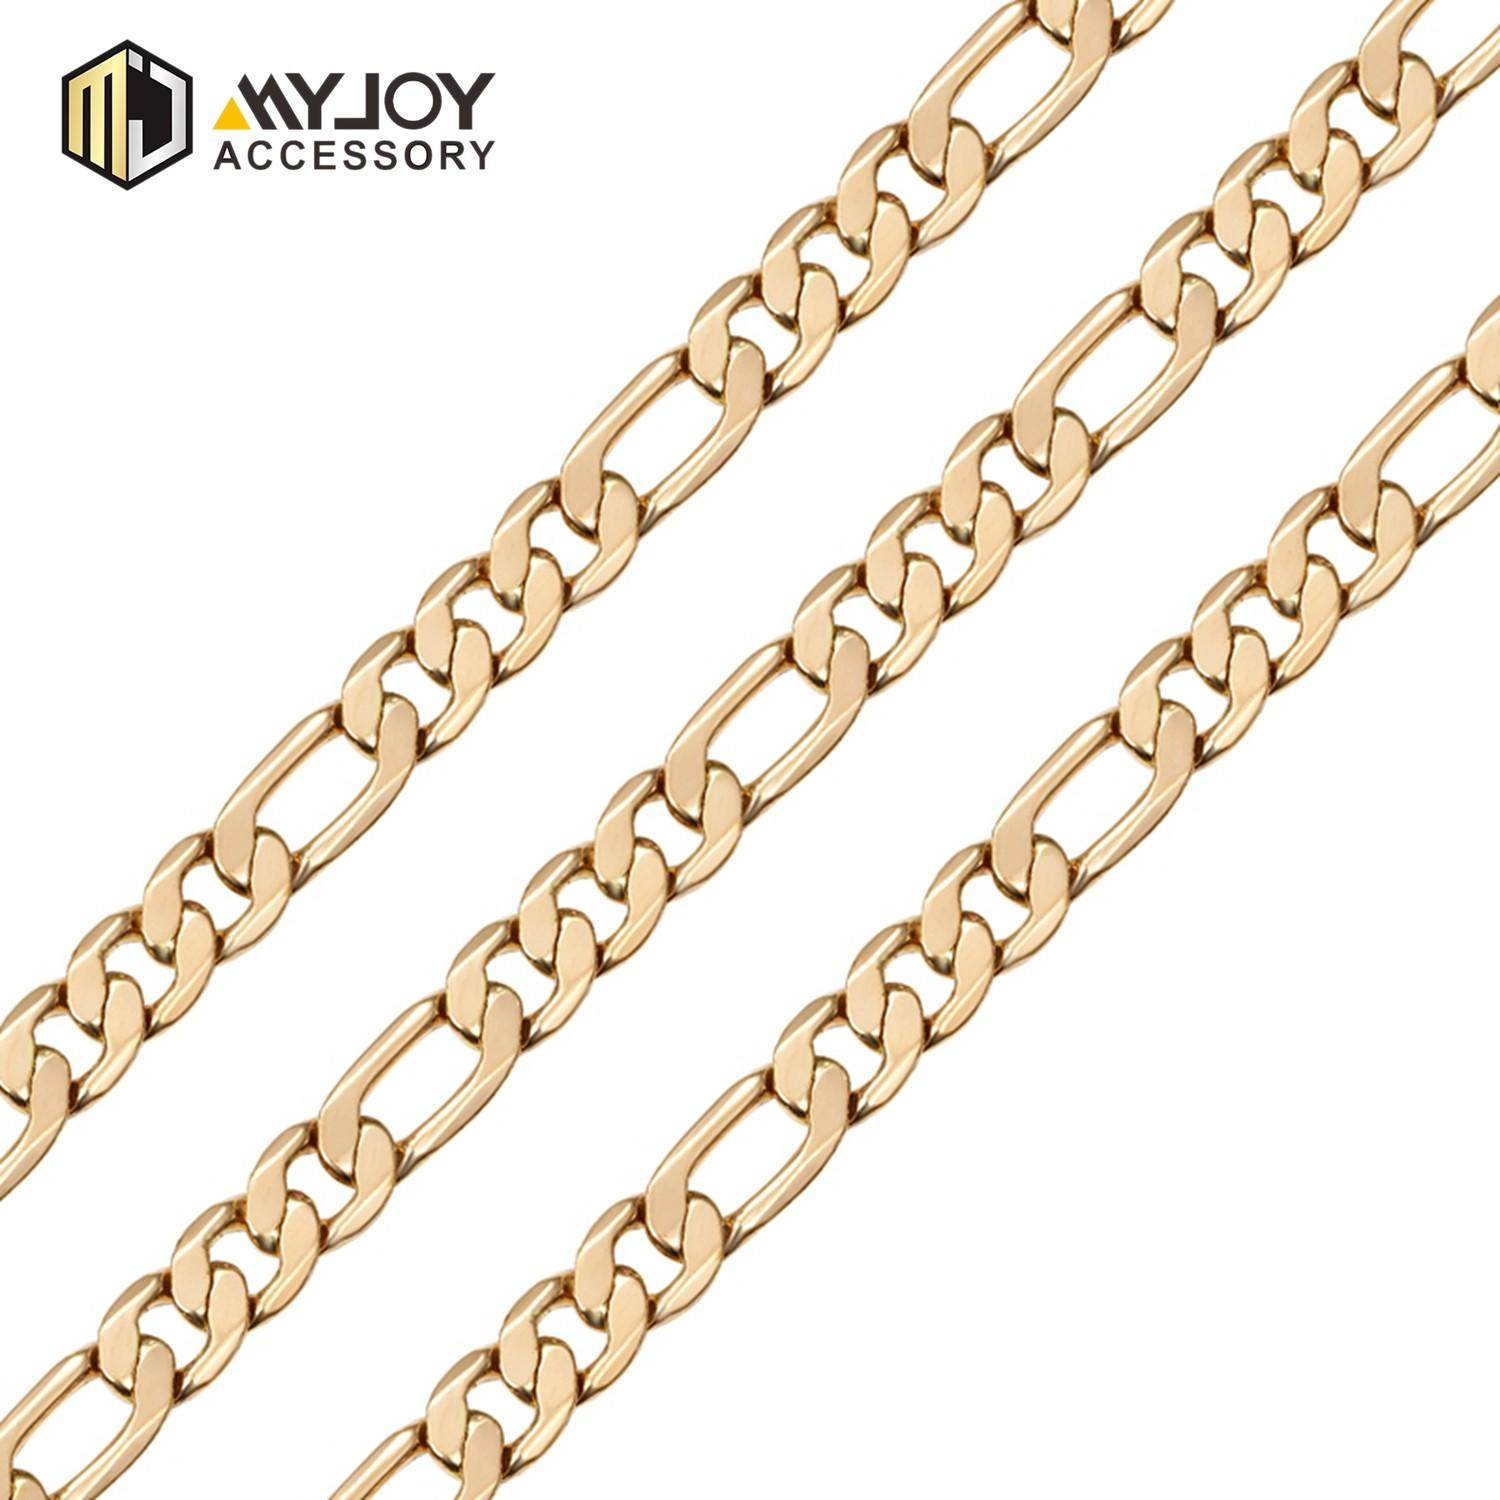 MYJOY Custom handbag chain strap stylish for handbag-3